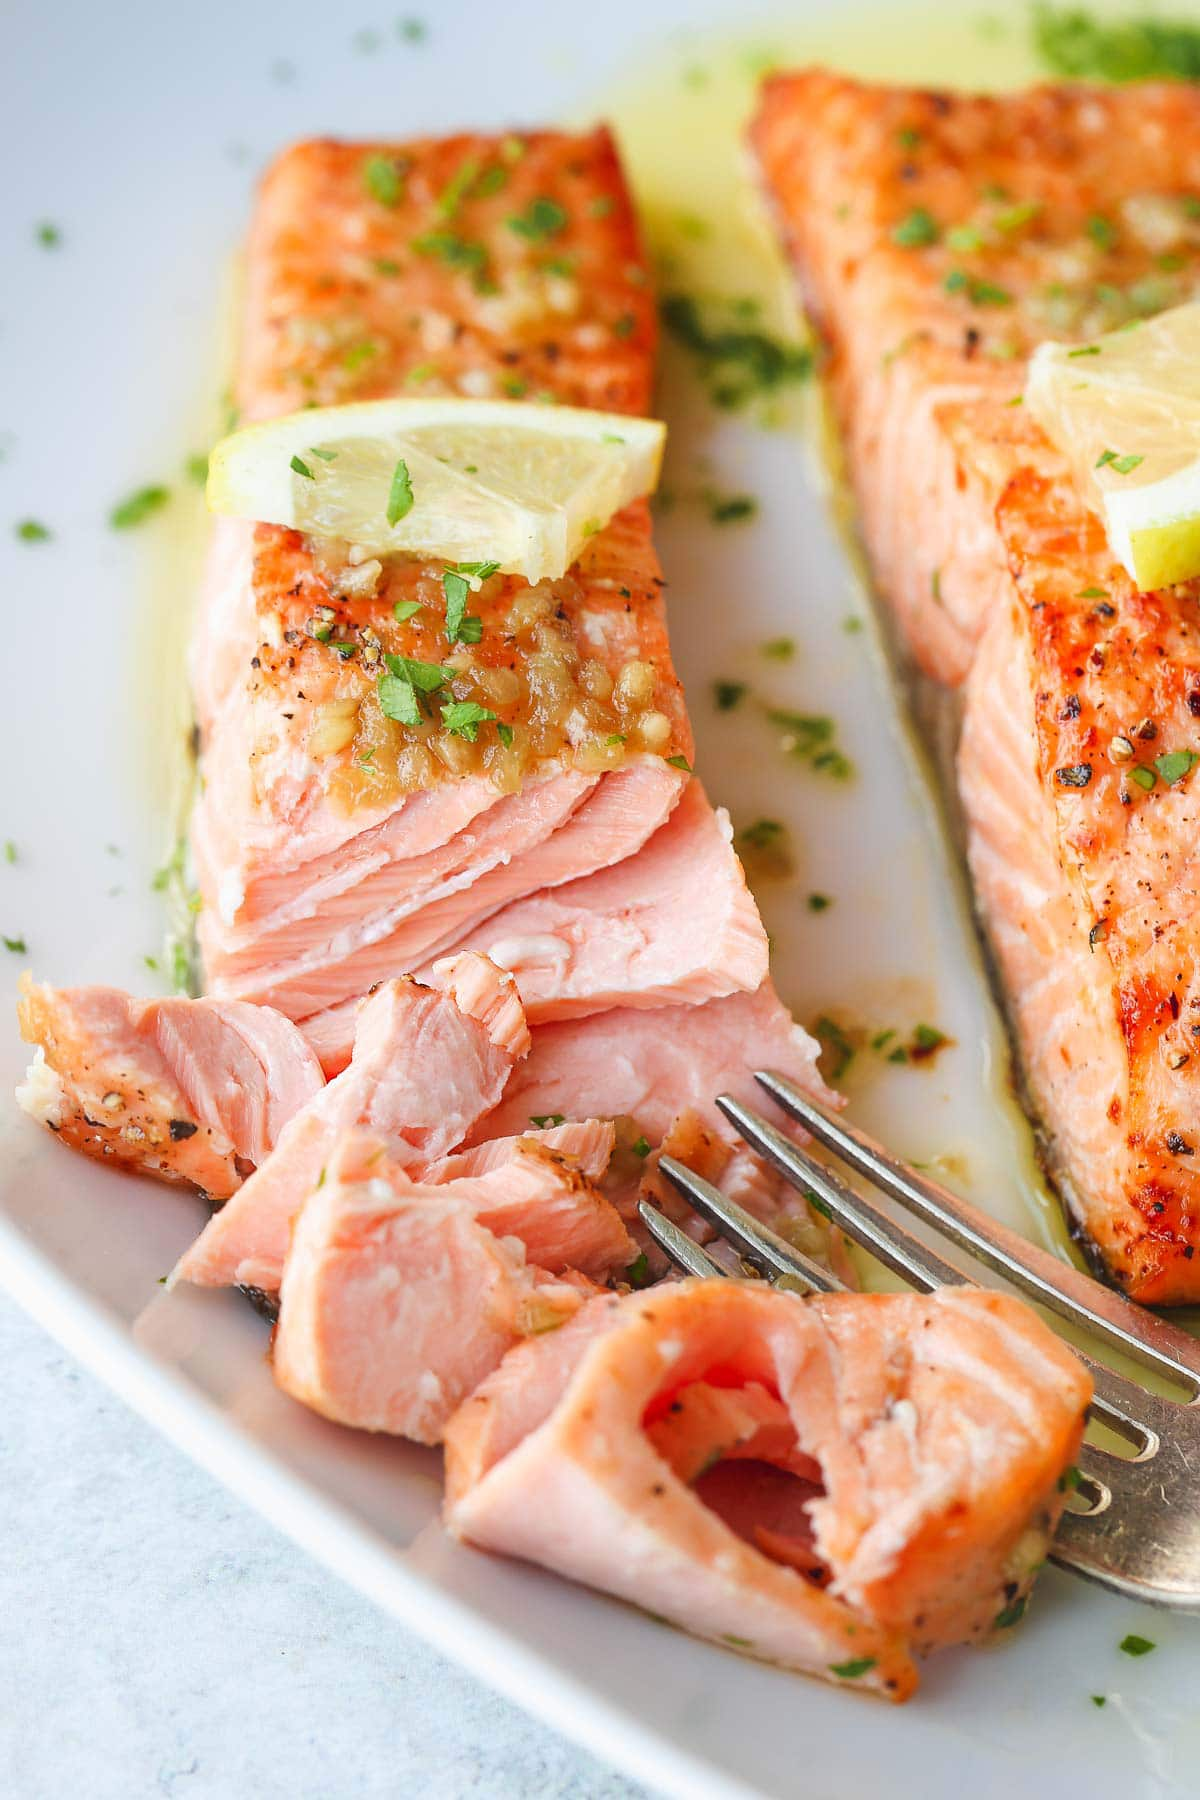 A close up shot showing the flaky air fryer salmon with a fork.